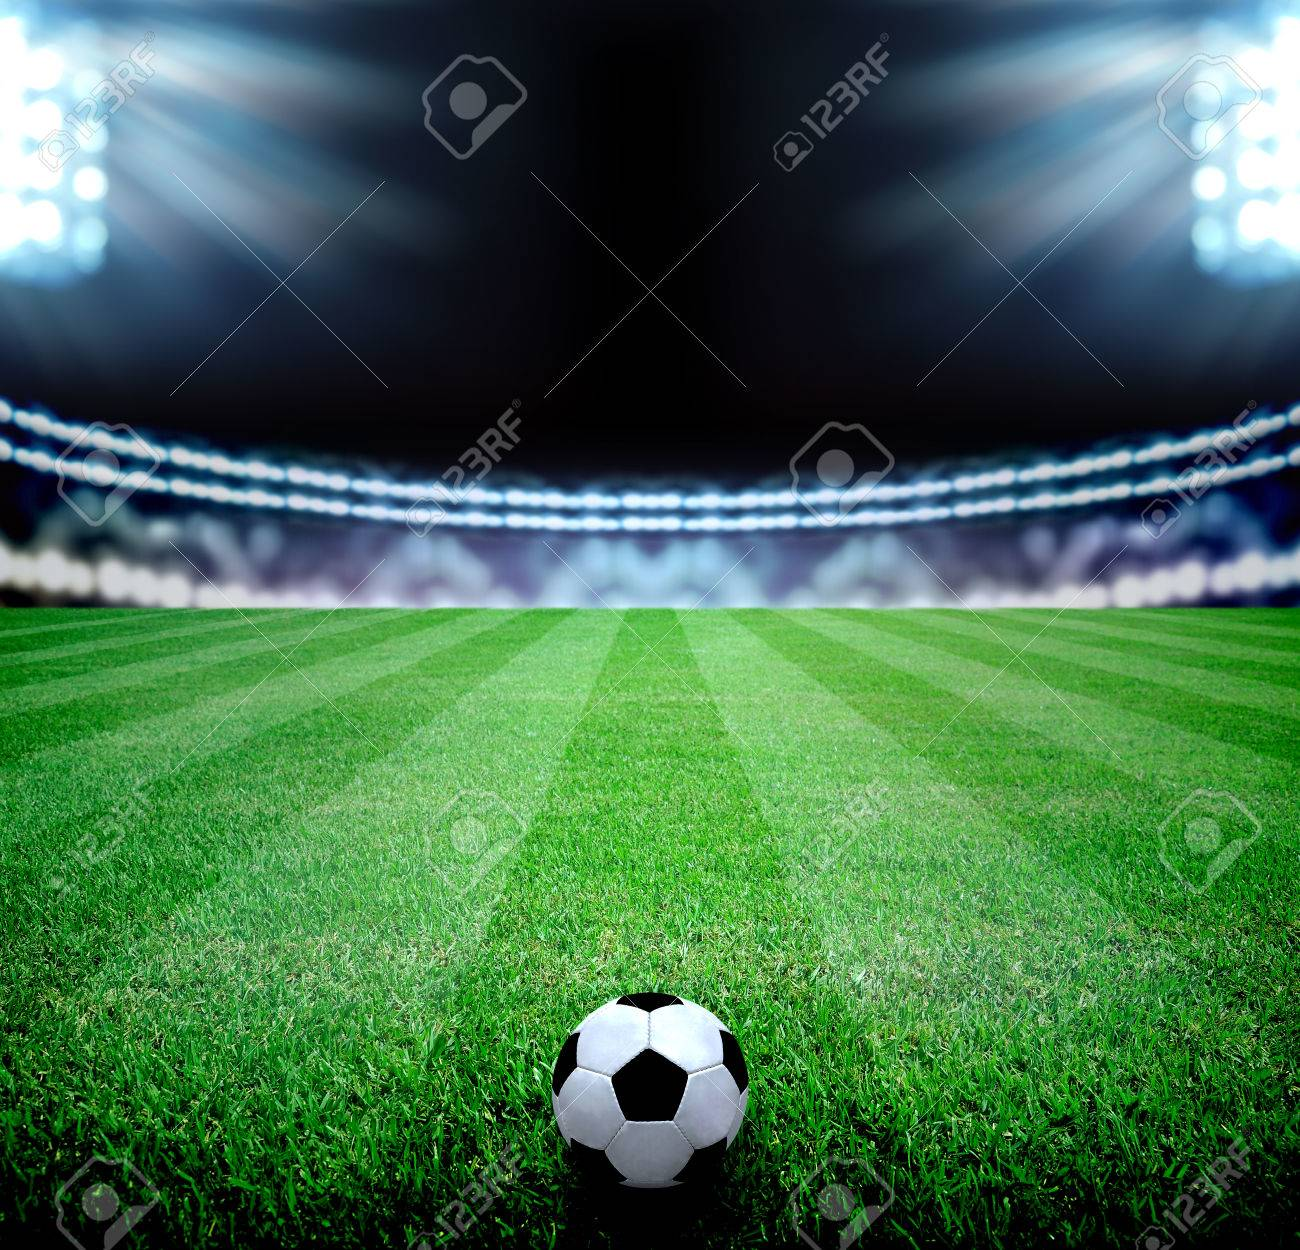 soccer field and the bright lights - 33960606